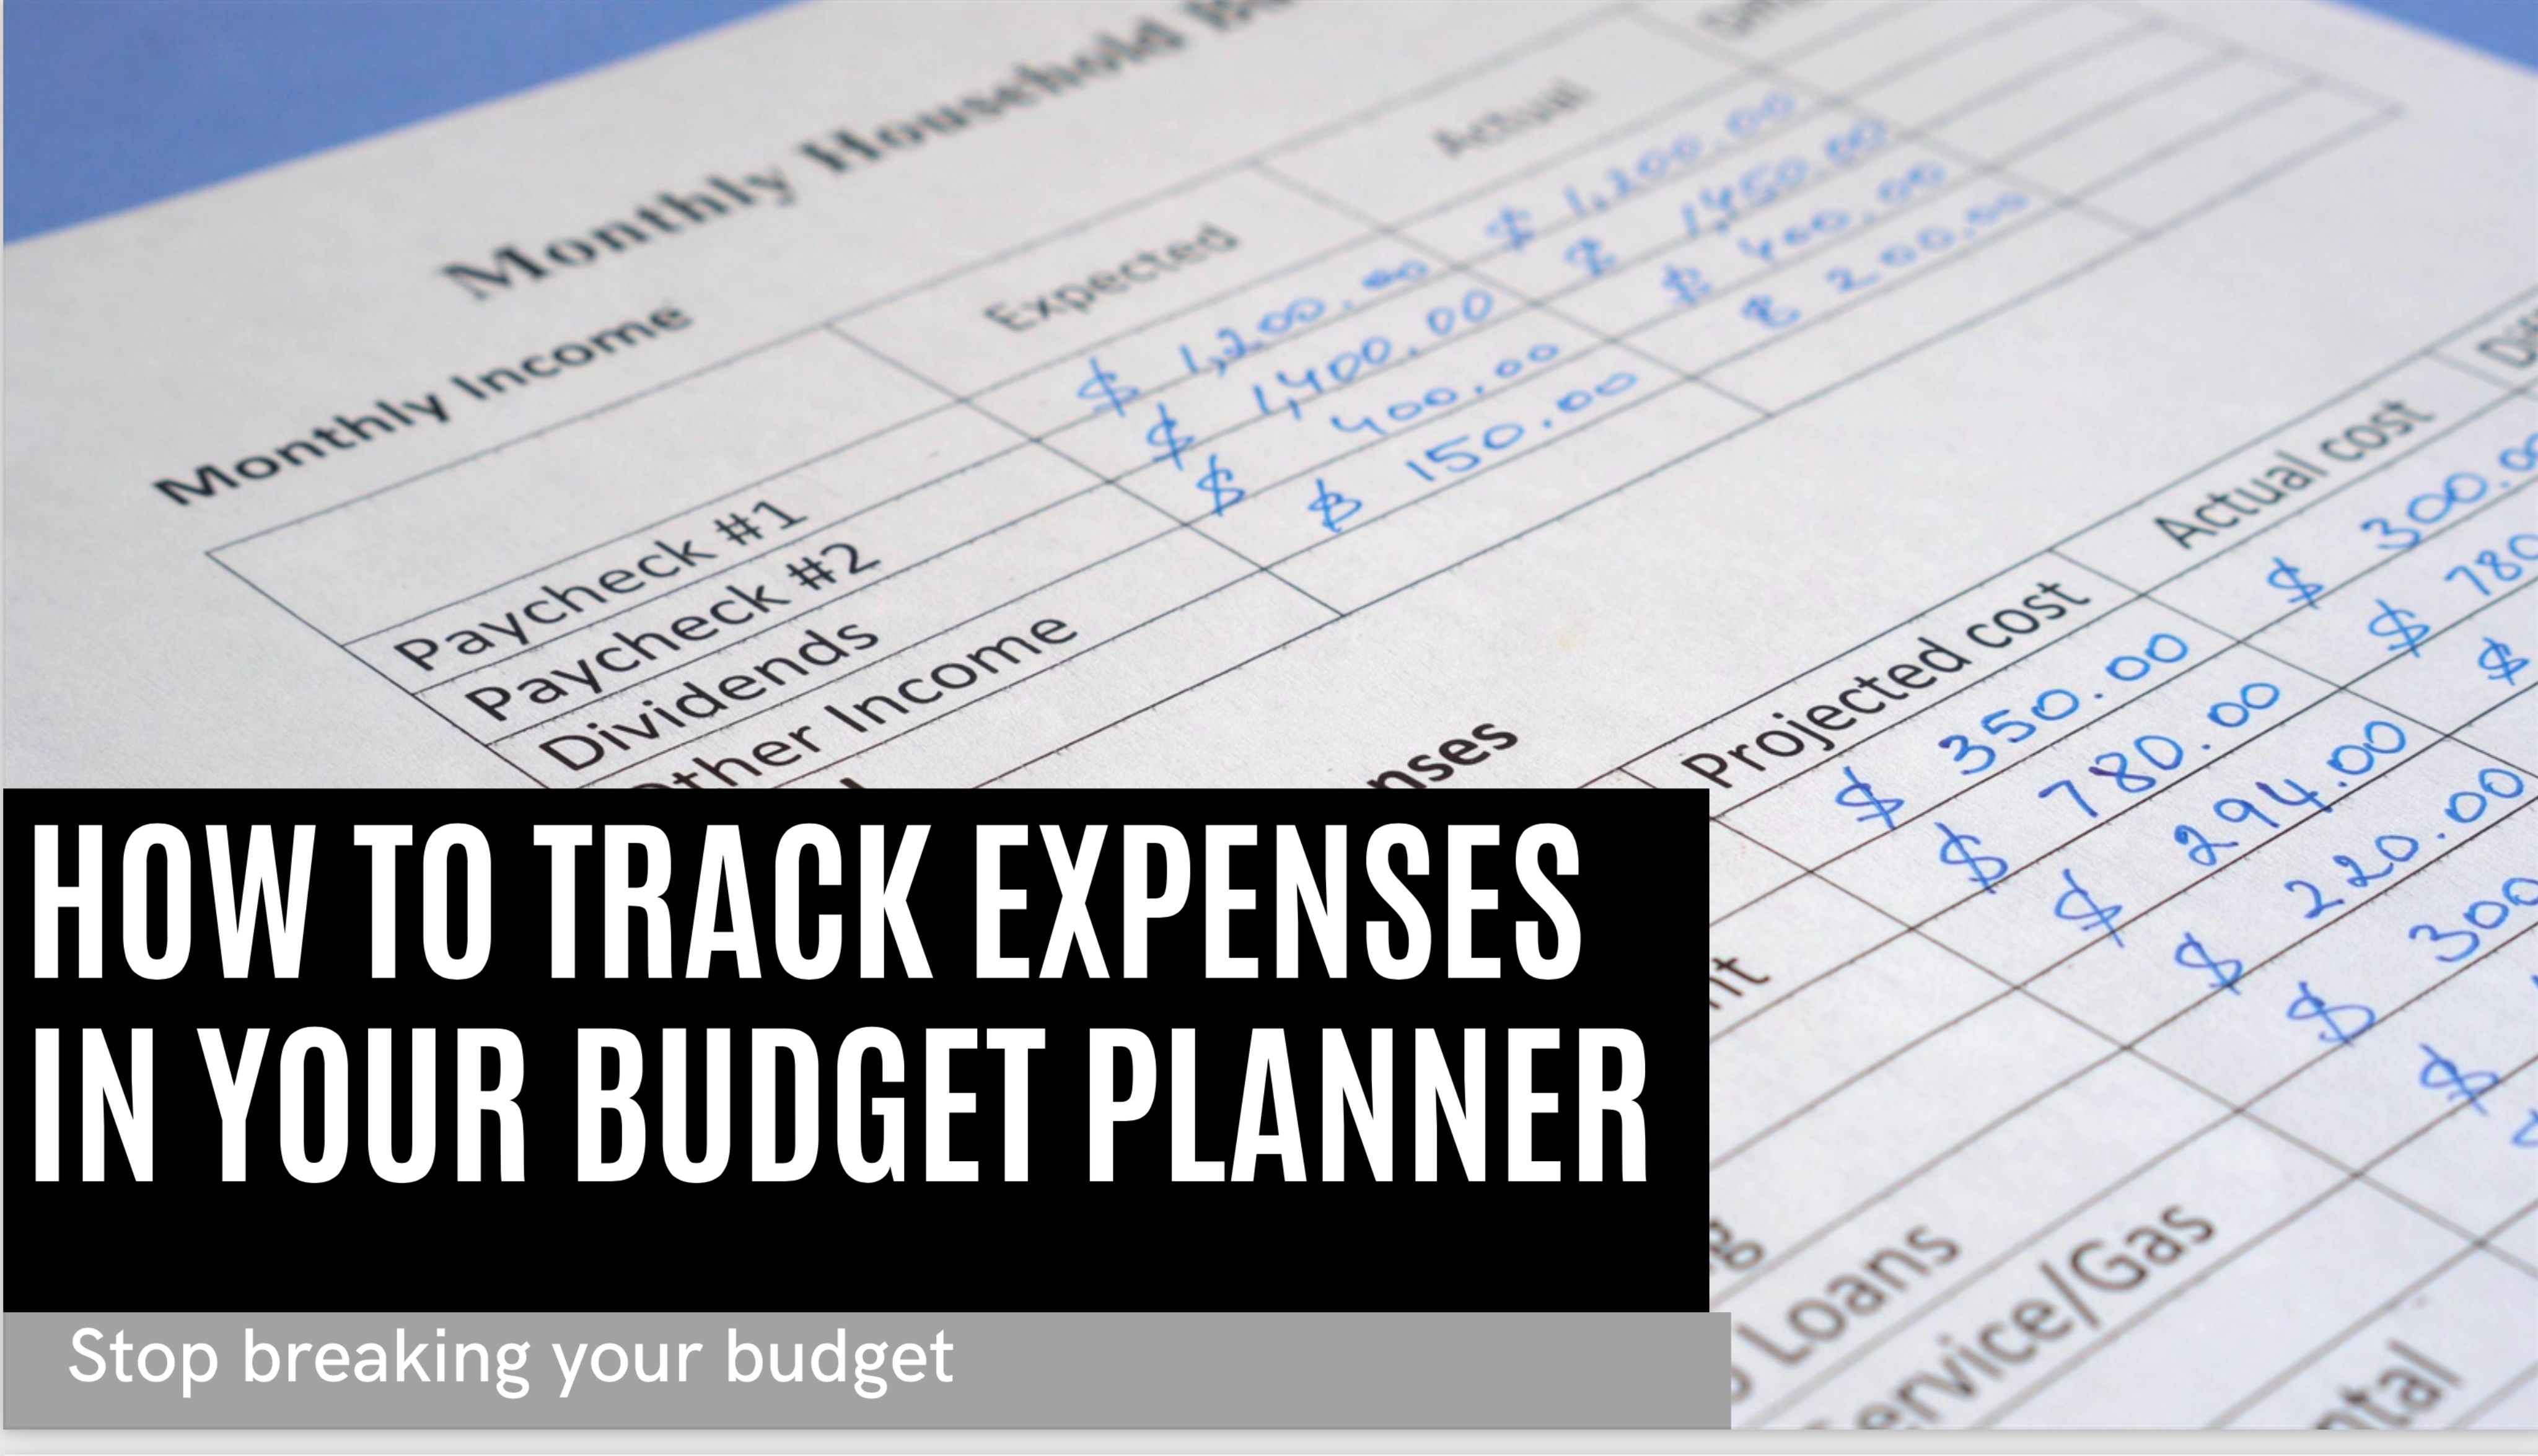 How To Track Your Expenses in a Budget Planner